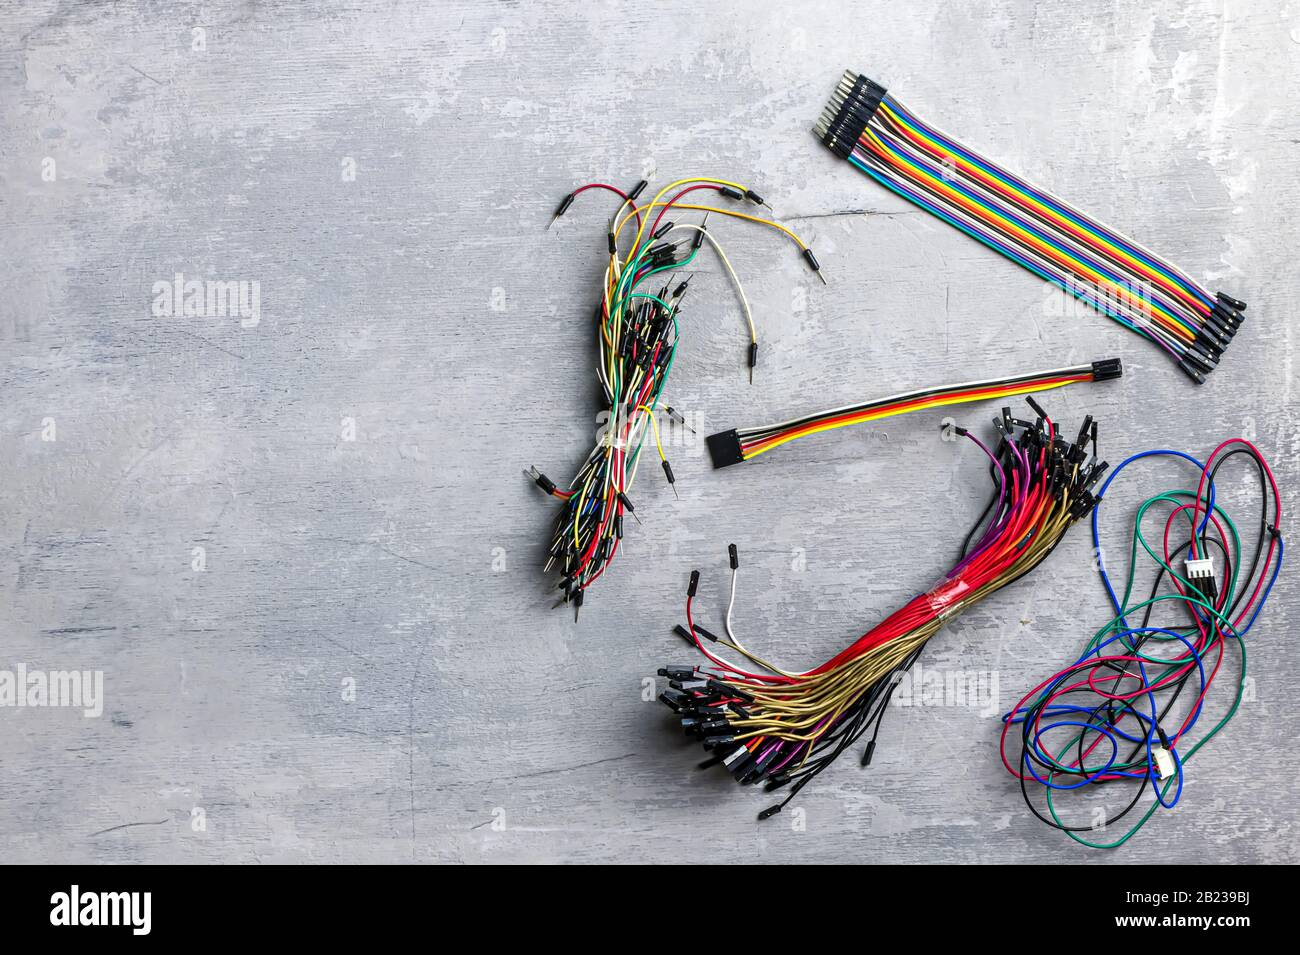 Electrician Electronics Different Wires On A Gray Wooden Background Place For Text Top View Copy Space Stock Photo Alamy